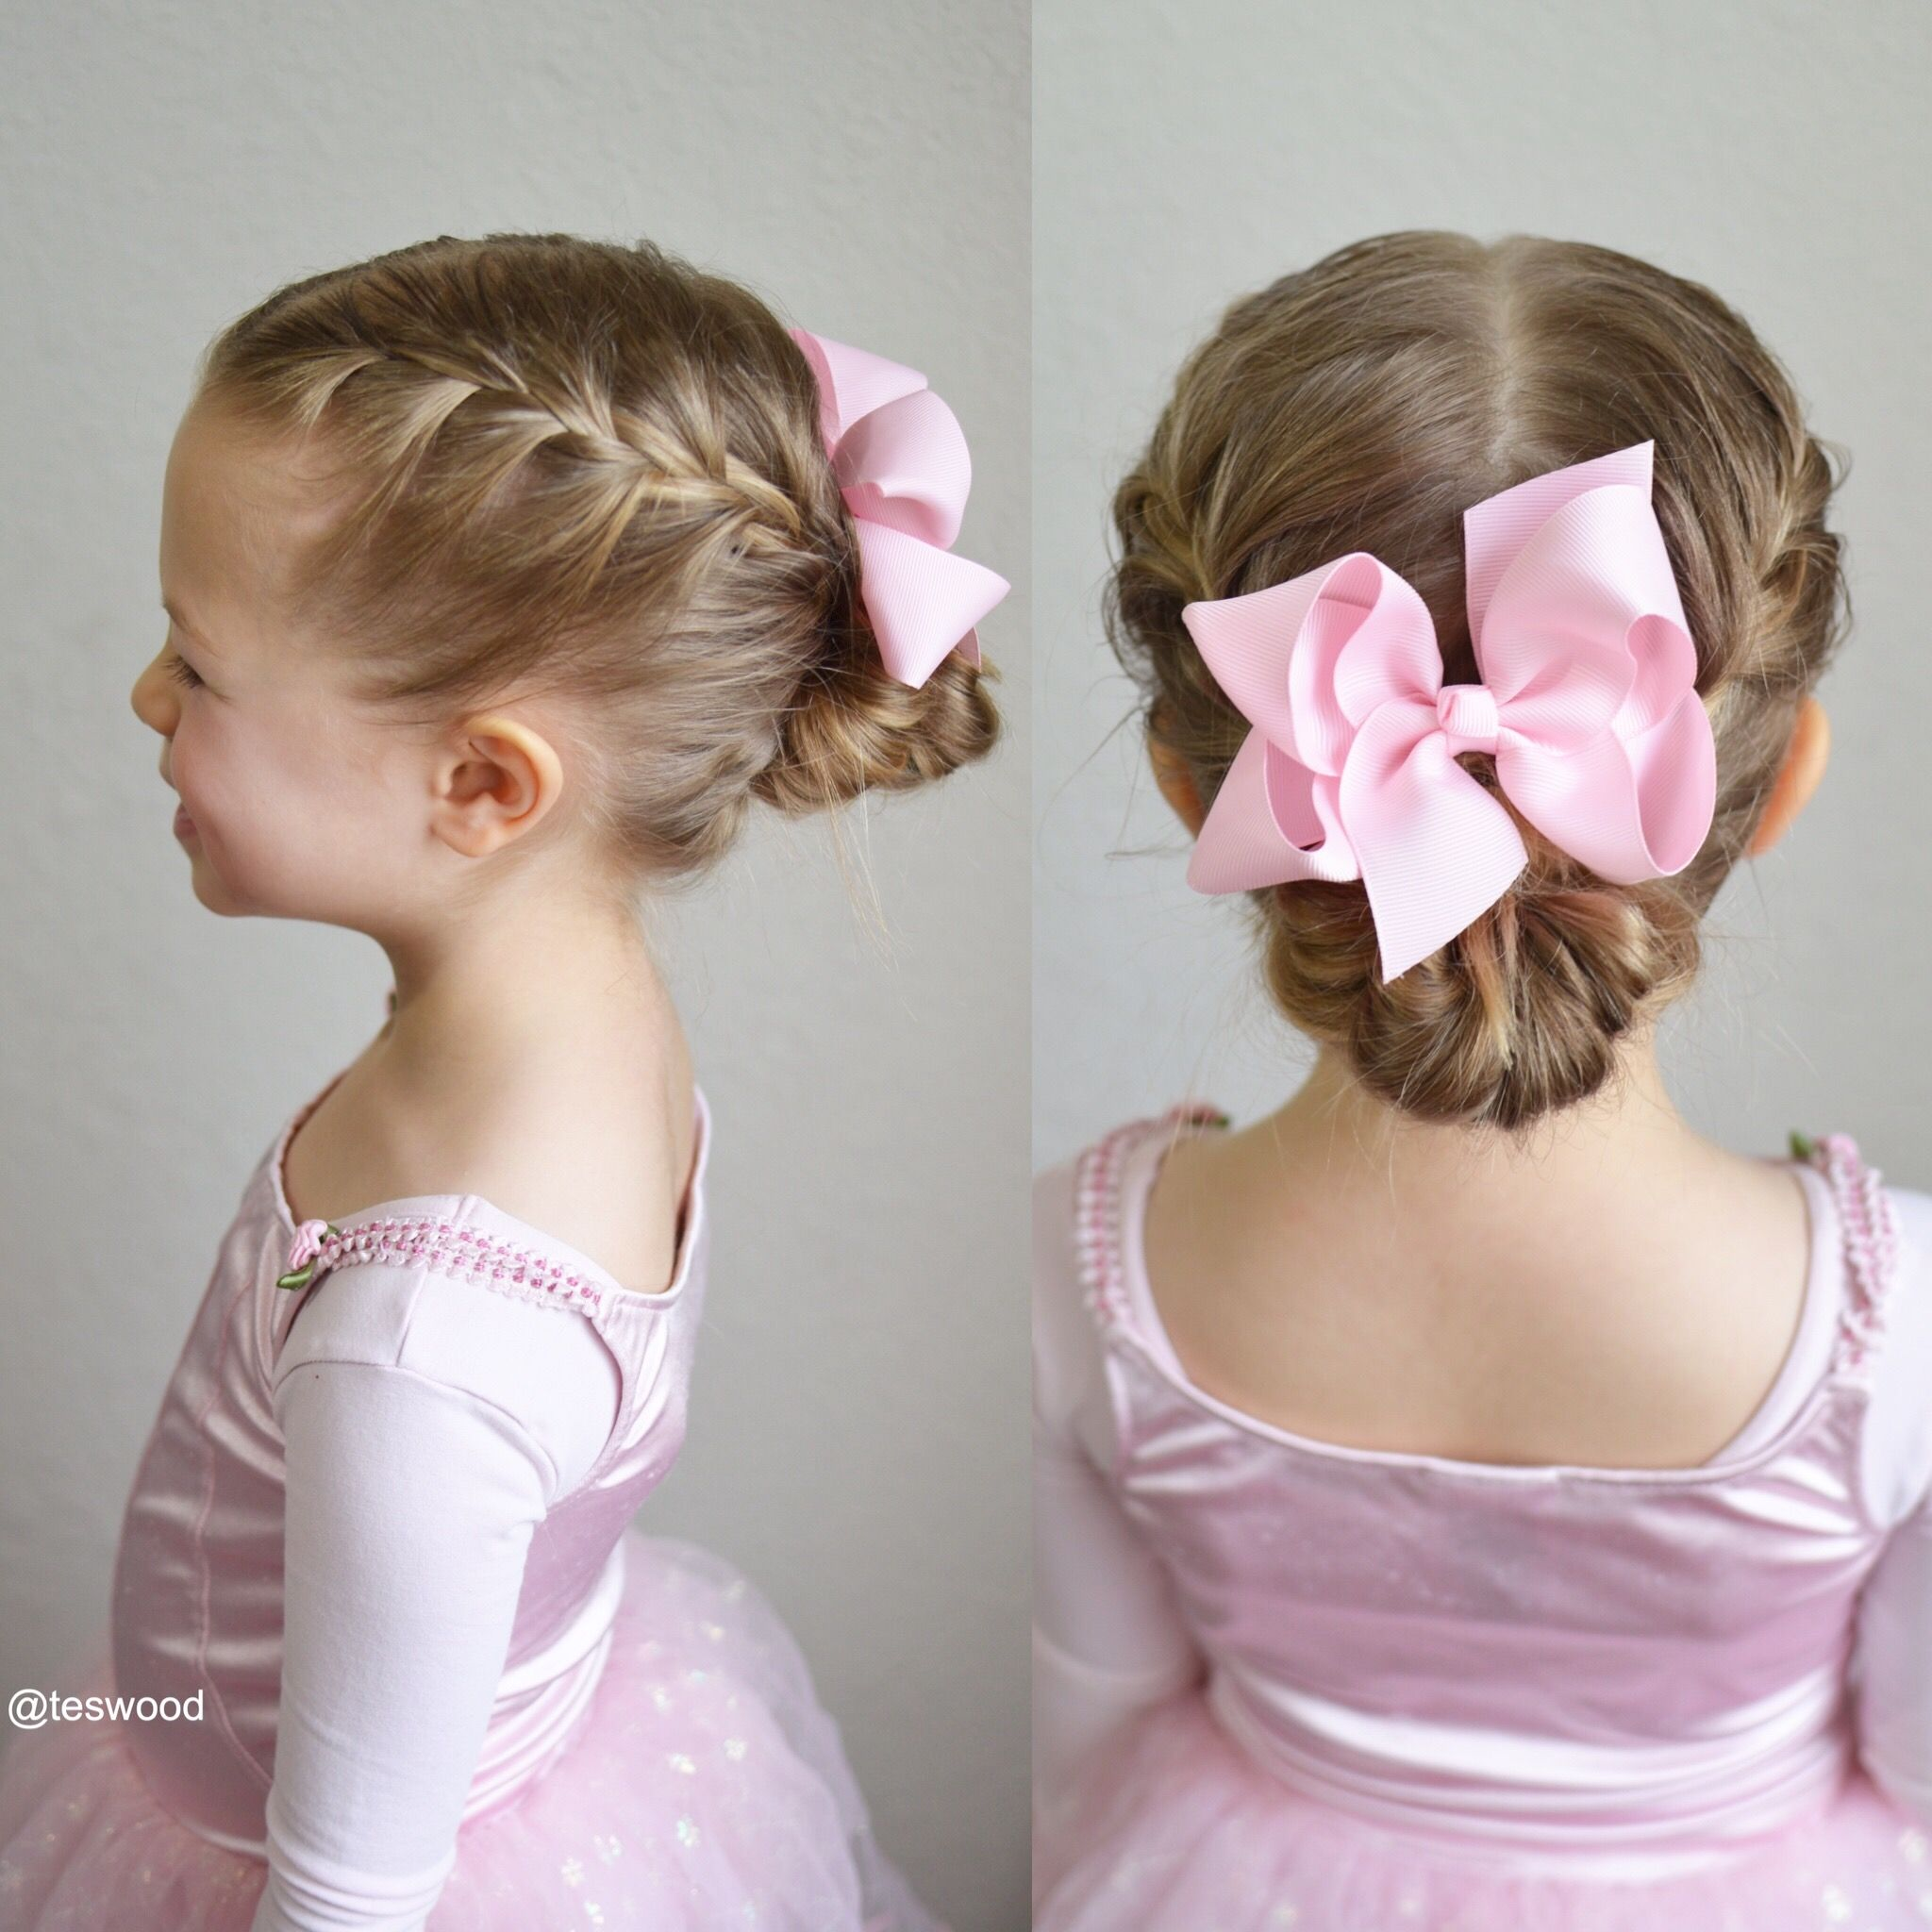 Double French Braids Into A Messy Bun Perfect Style For Dance Kids Hairstyles Girls Little Girl Updo Girls Updo